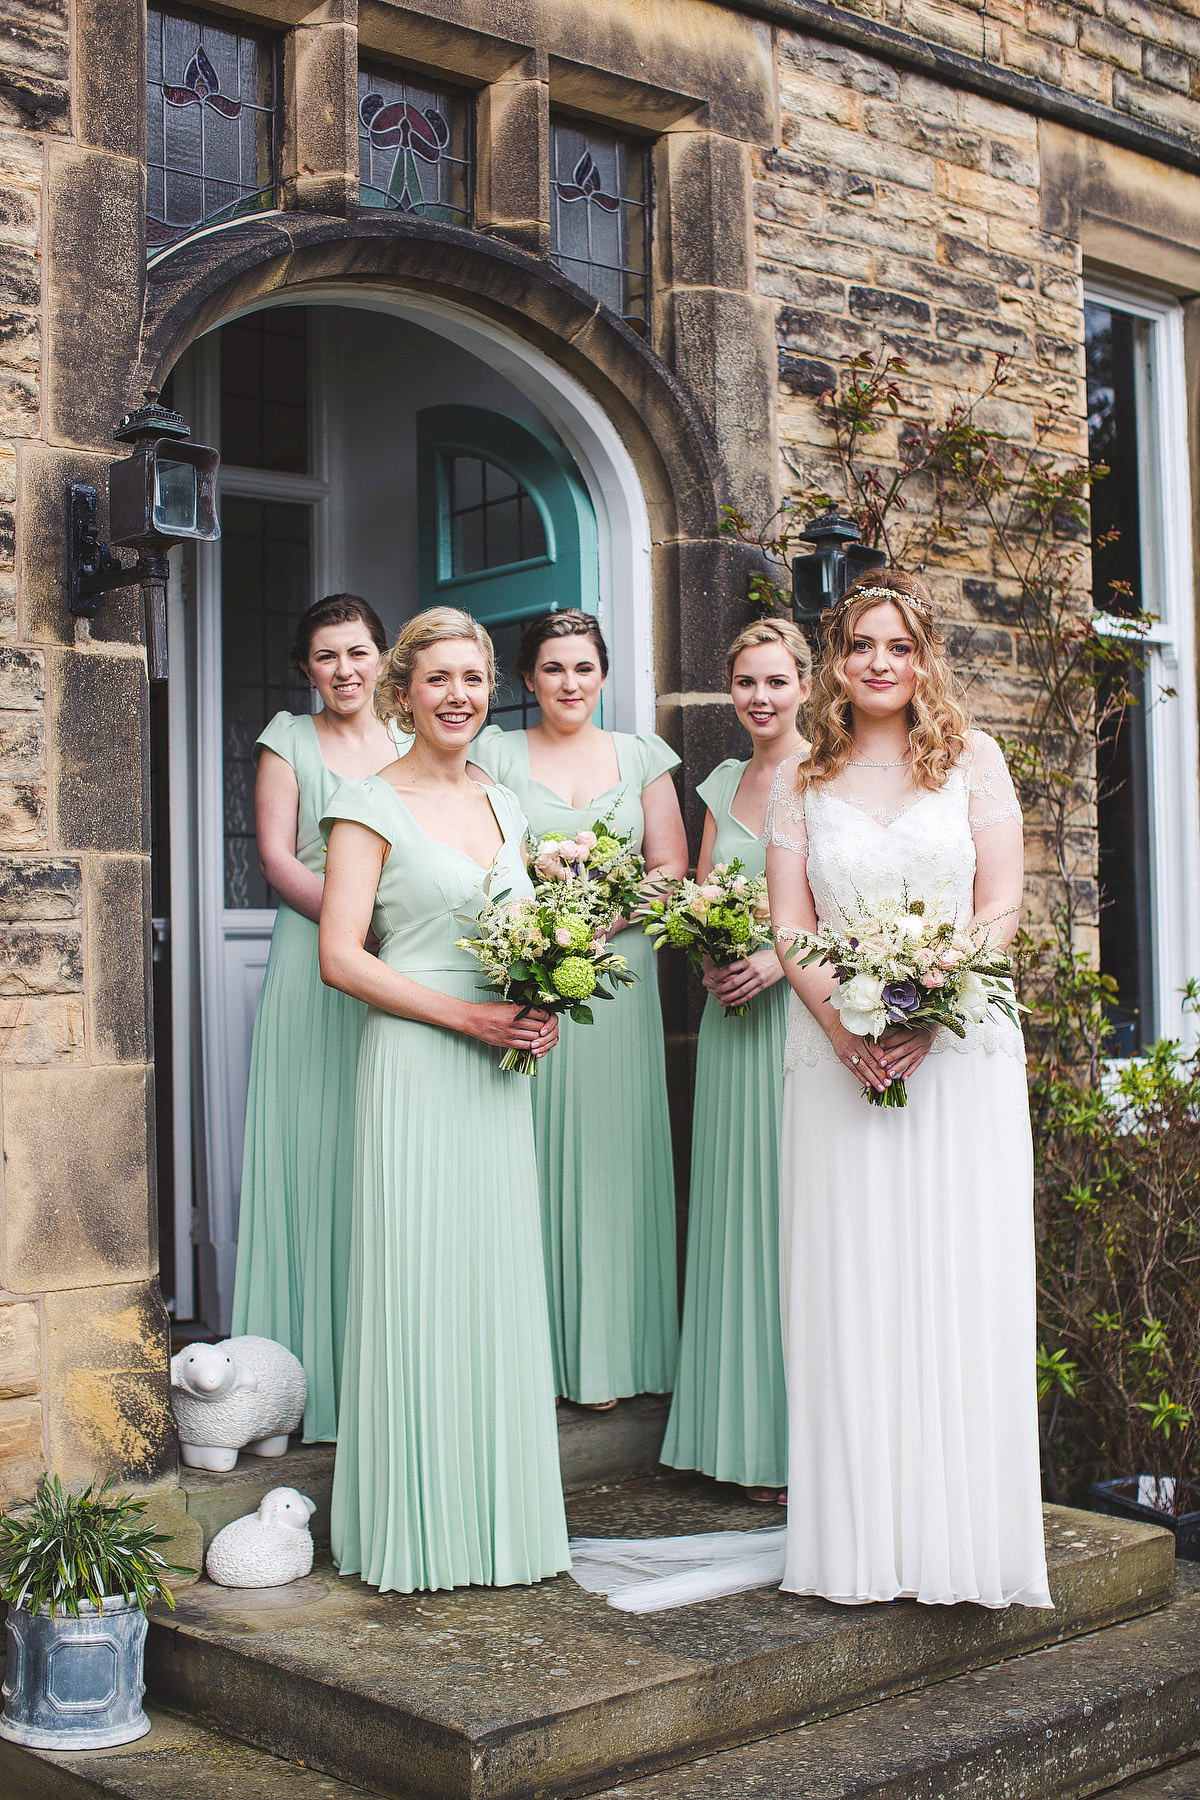 Jenny Packham and Wildflower Elegance for a Pastel Colour Wedding in the Peak District